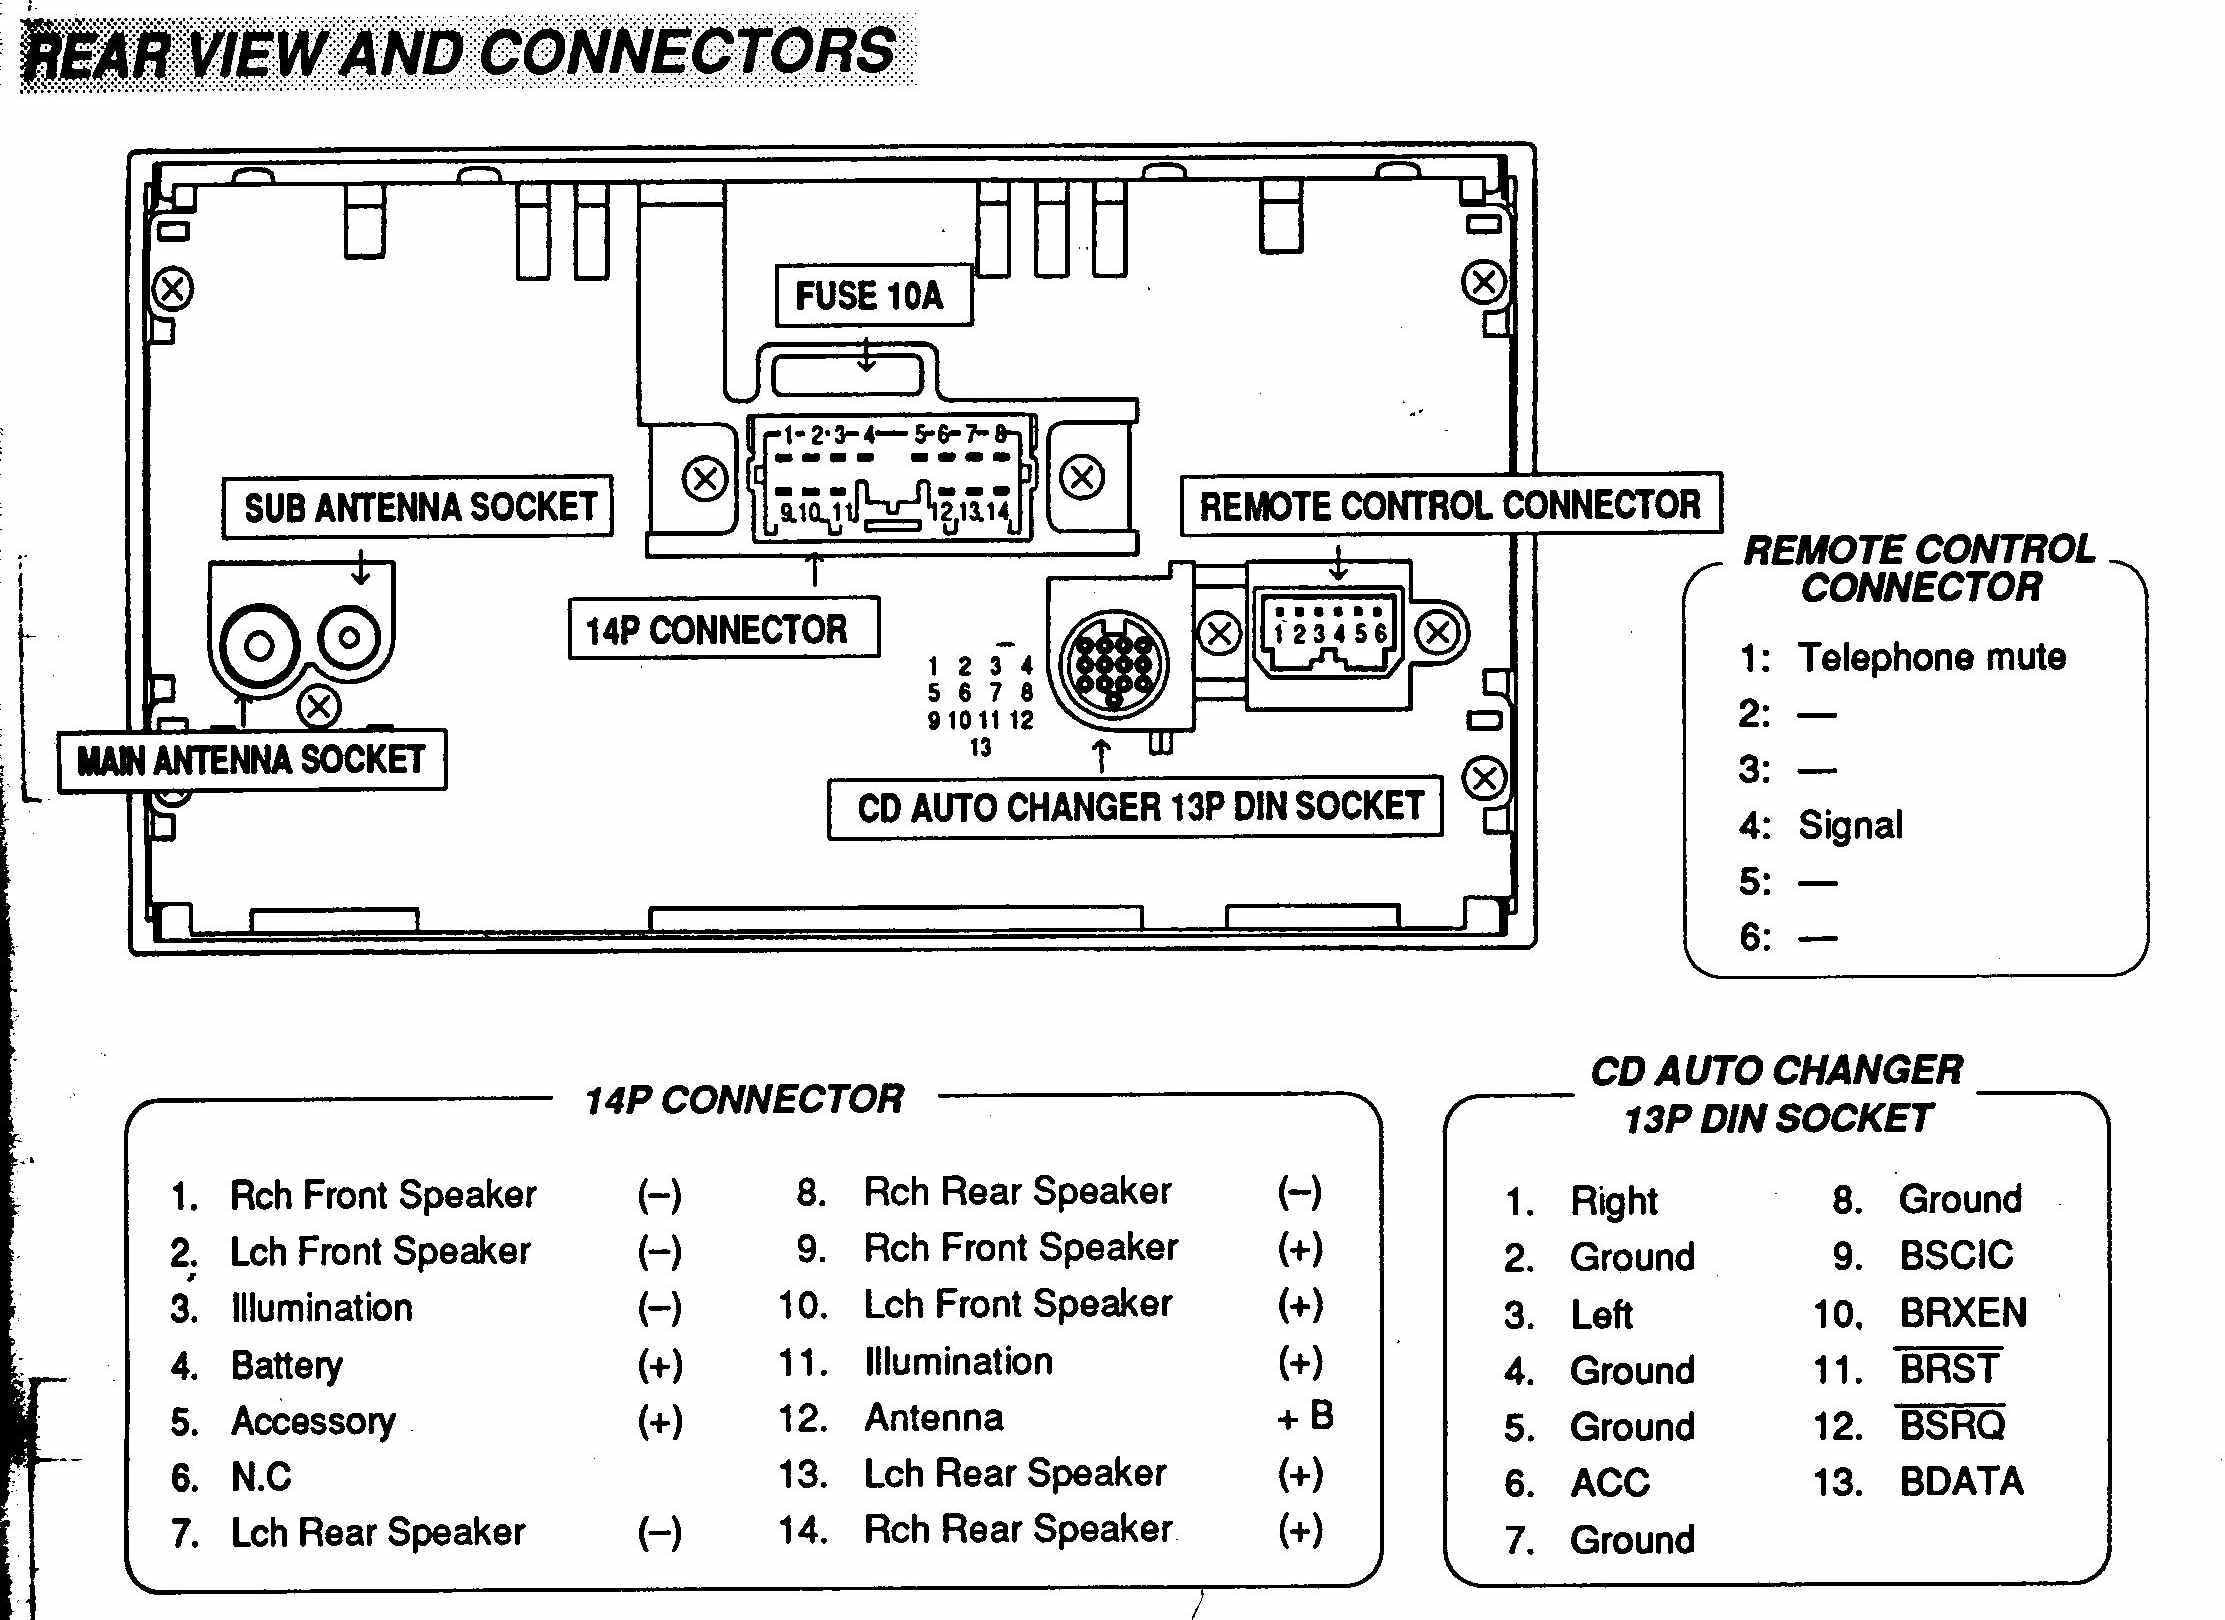 2000 Vw Jetta Stereo Wiring Diagram Wiring Diagram Moreover 2001 Mitsubishi Eclipse Radio Wiring Diagram Of 2000 Vw Jetta Stereo Wiring Diagram